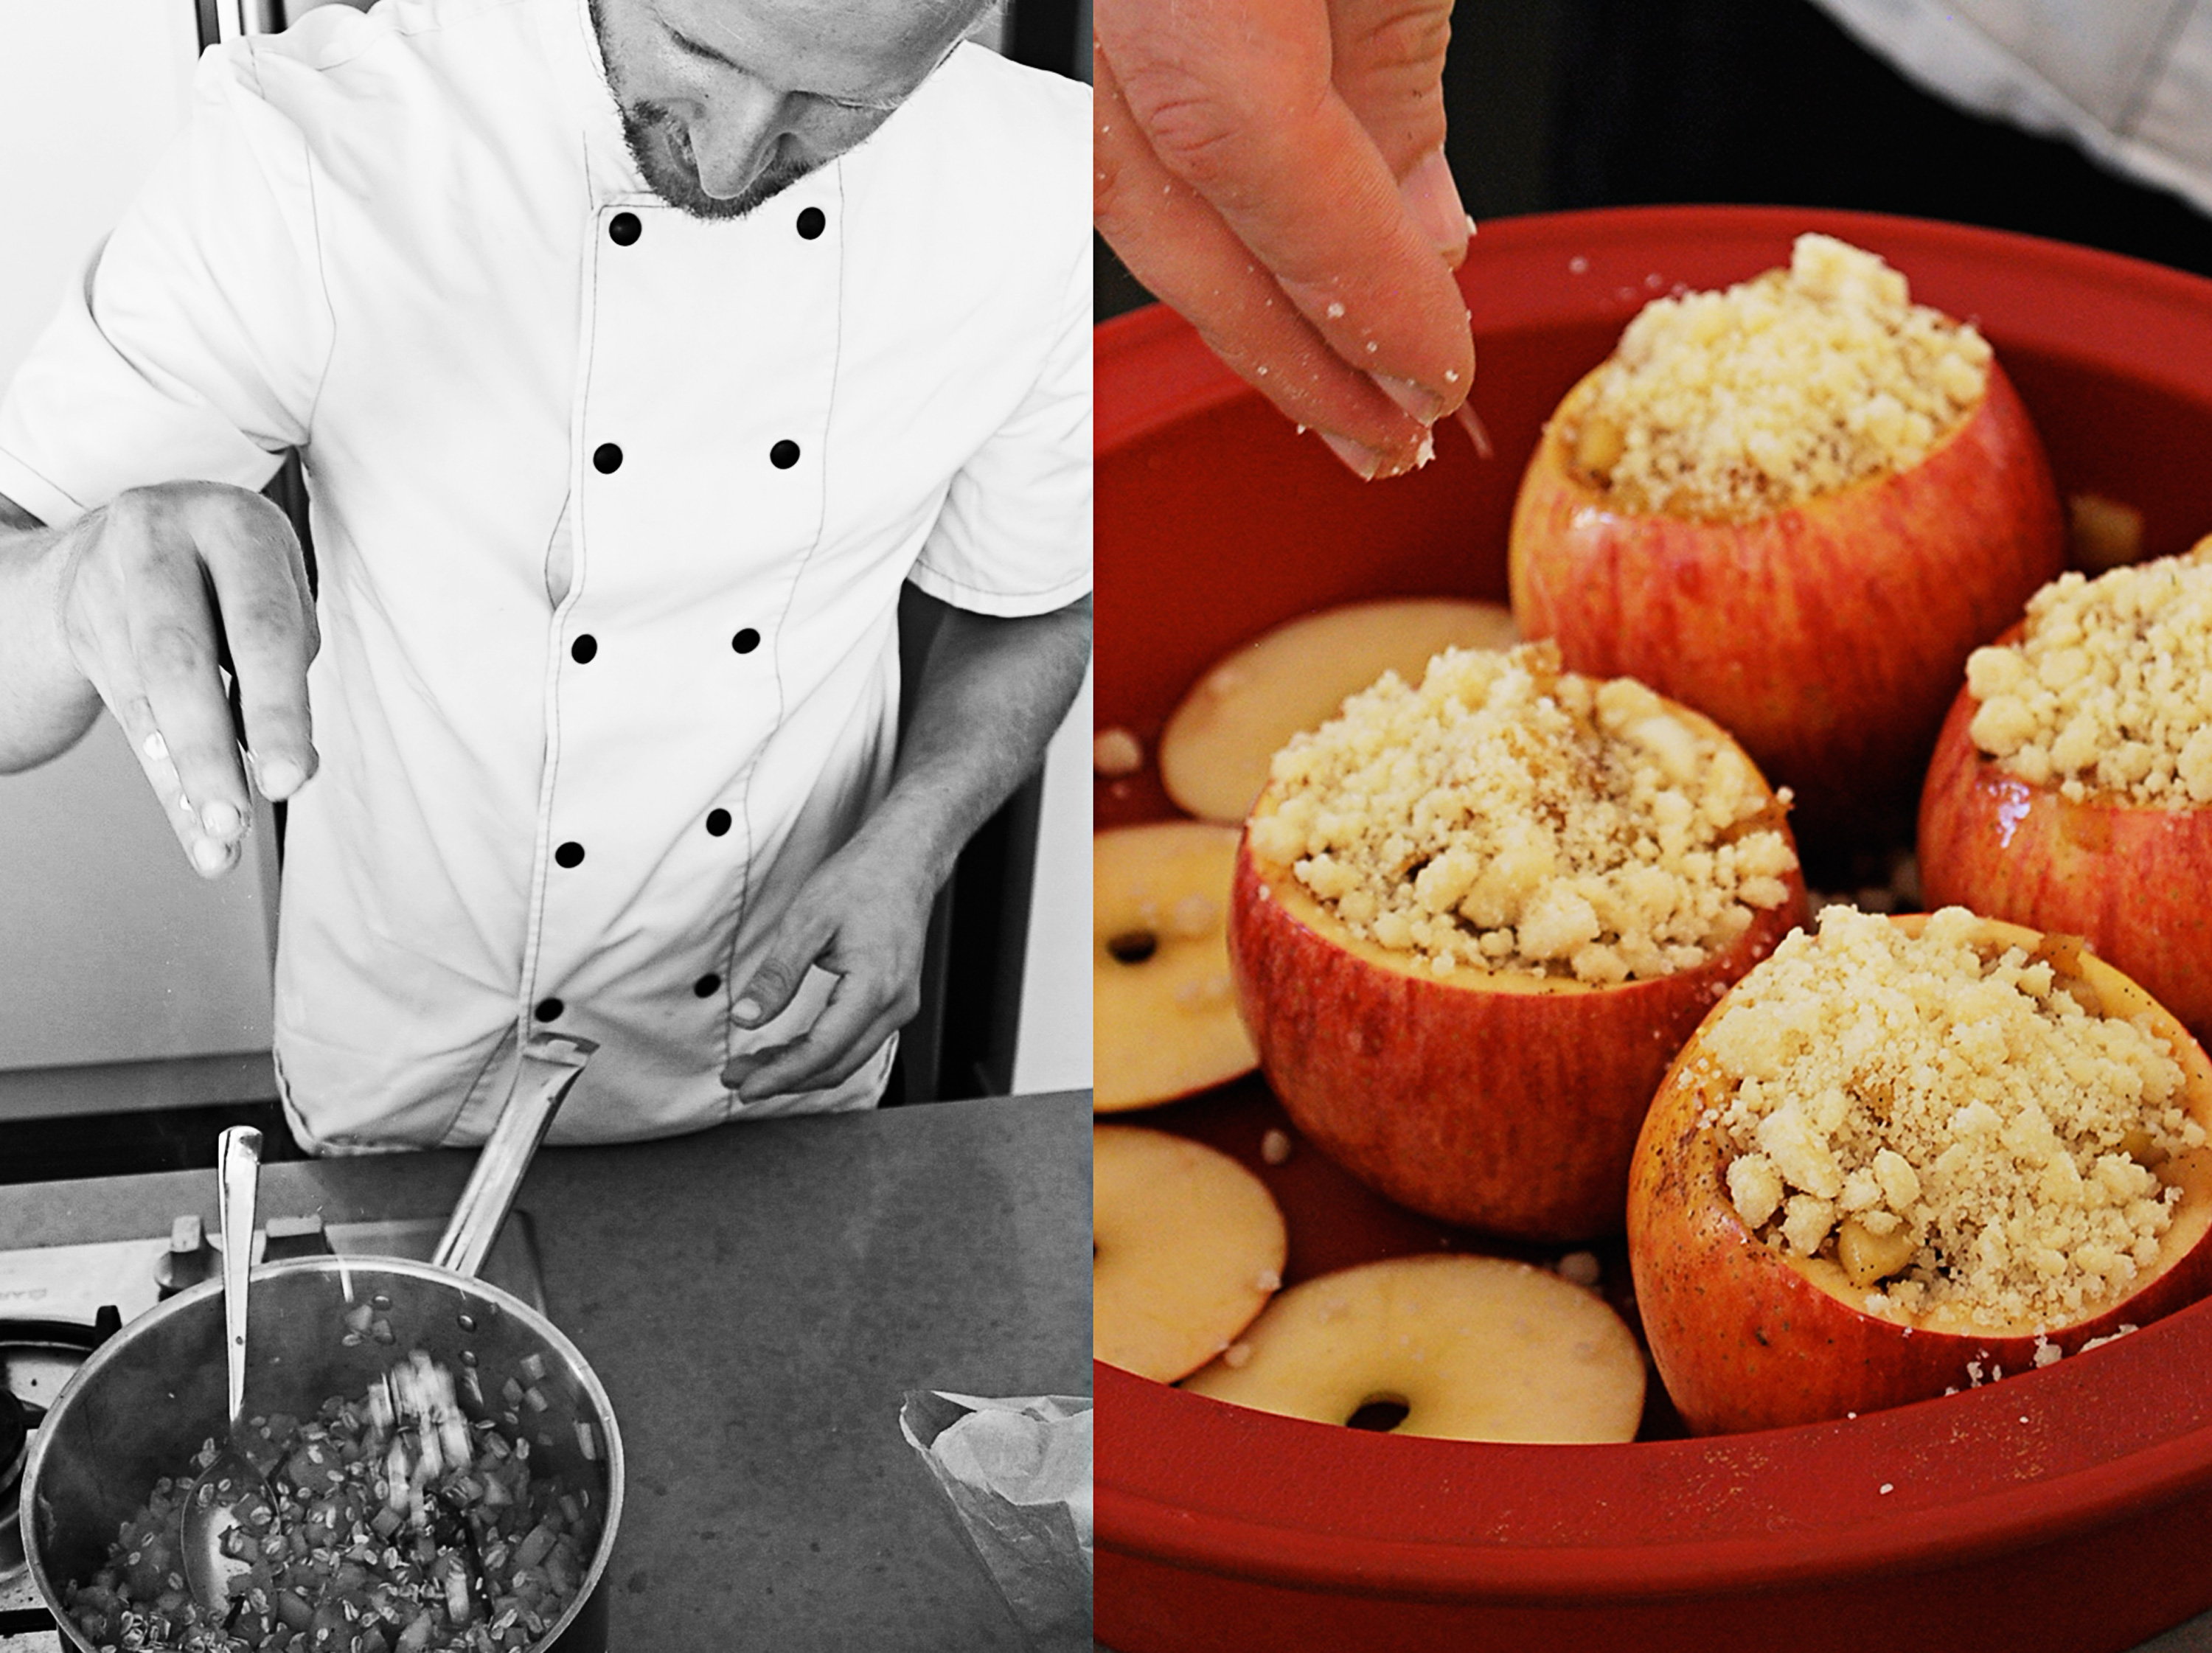 chef-ariel-daj-darya-jewellery-making-of-apple-crumble